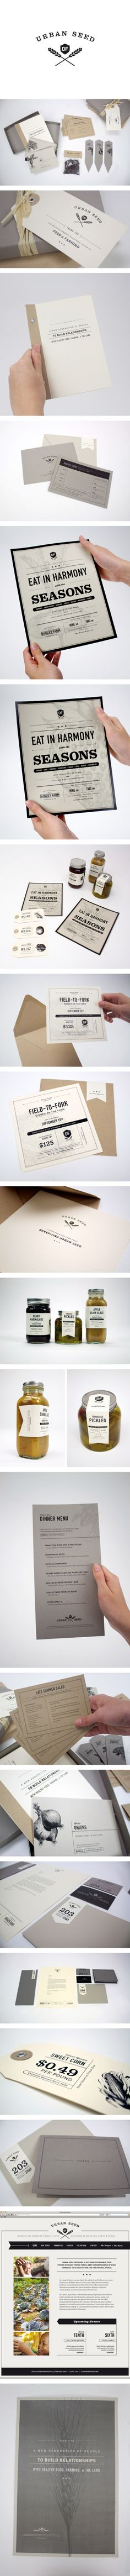 #houseofbranding | Urban Seed Identity System and Packaging by Caroline Morris